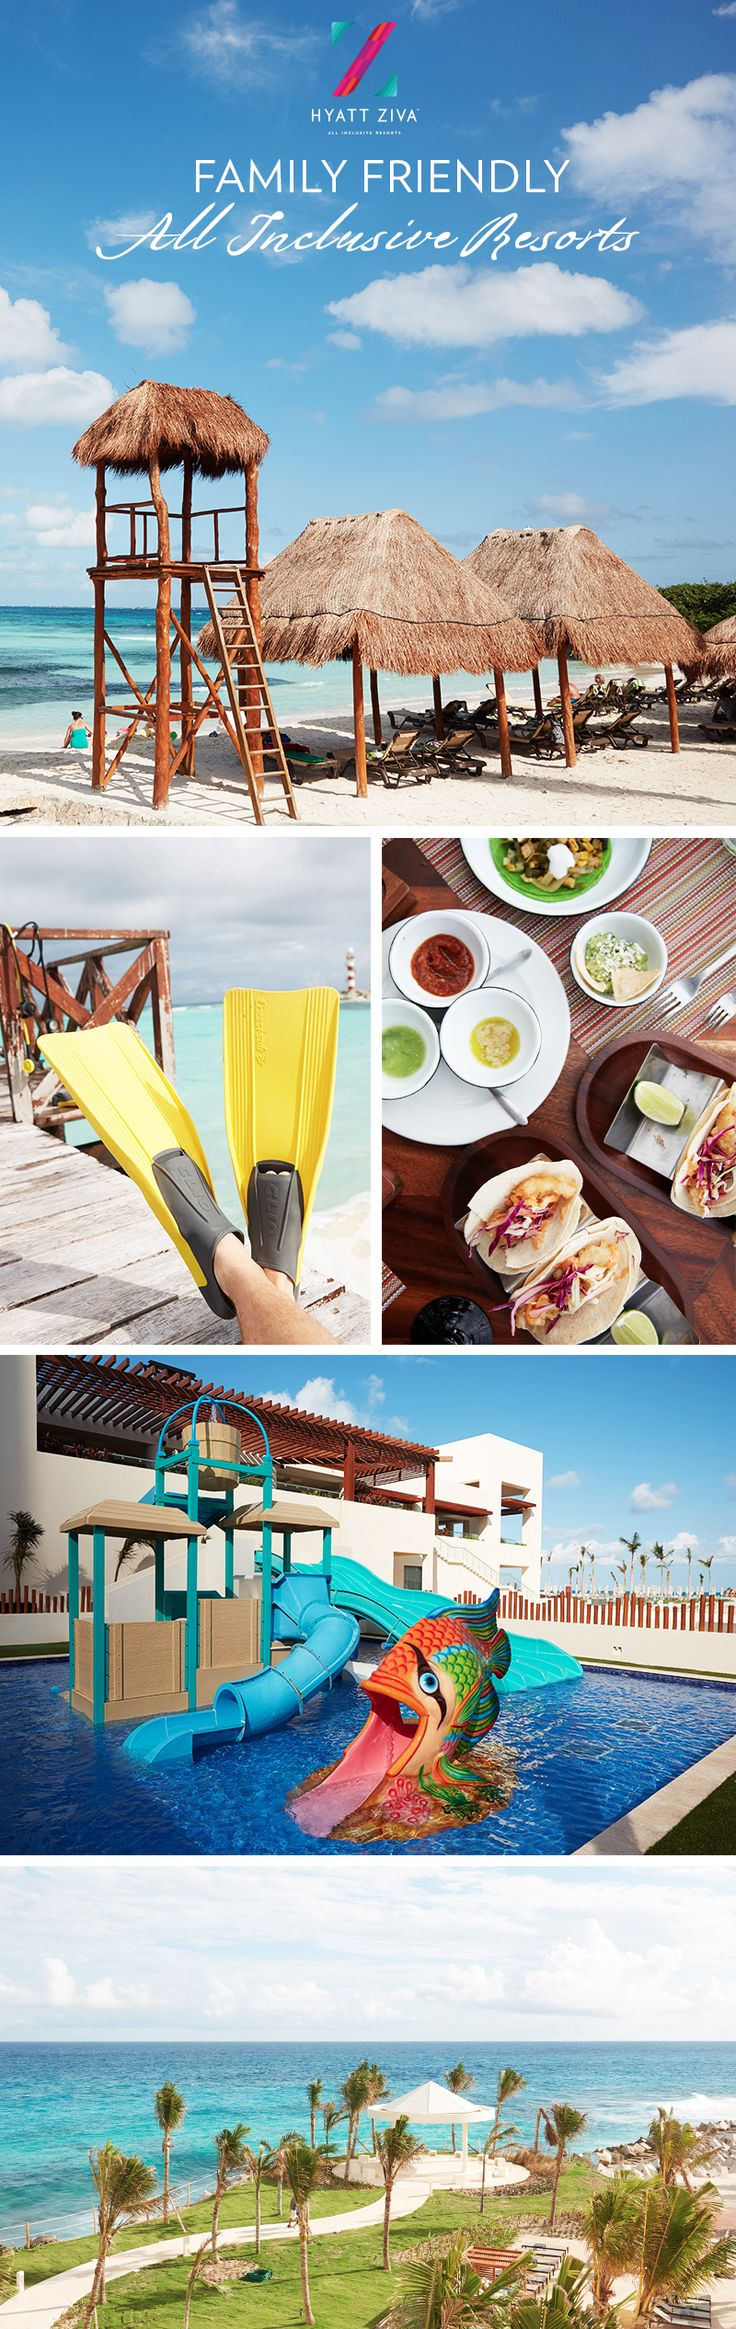 Book a getaway to Hyatt Ziva Cancun and experience an all inclusive vacation the whole family will remember.